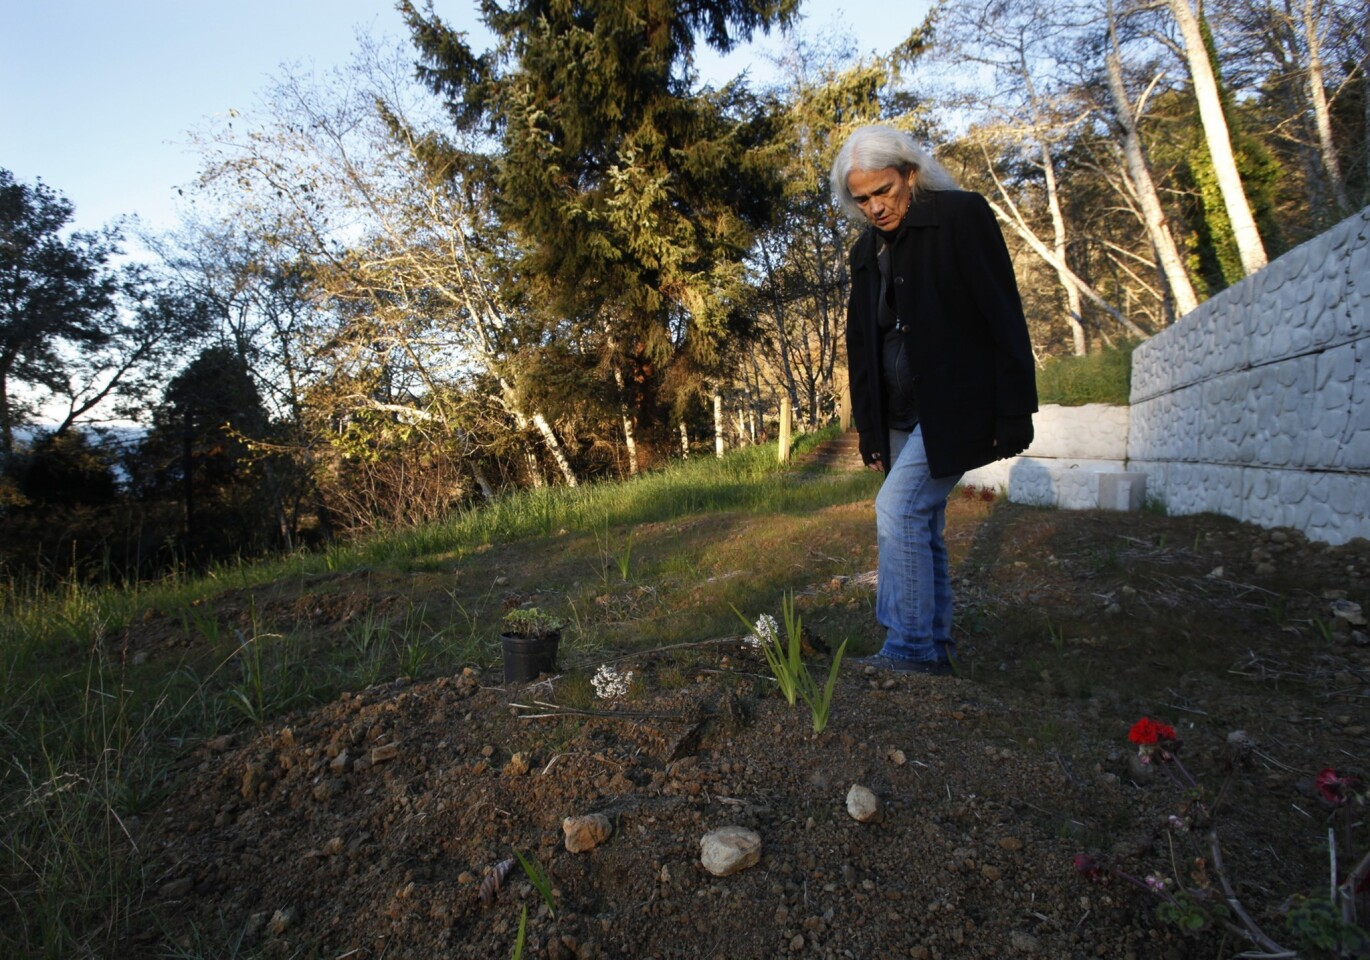 As the sun rises, Abinanti places flowers on her mother's grave next to her home at the mouth of the Klamath River along California's north coast. Abinanti visits the grave, now on her tribal land, before going to work.